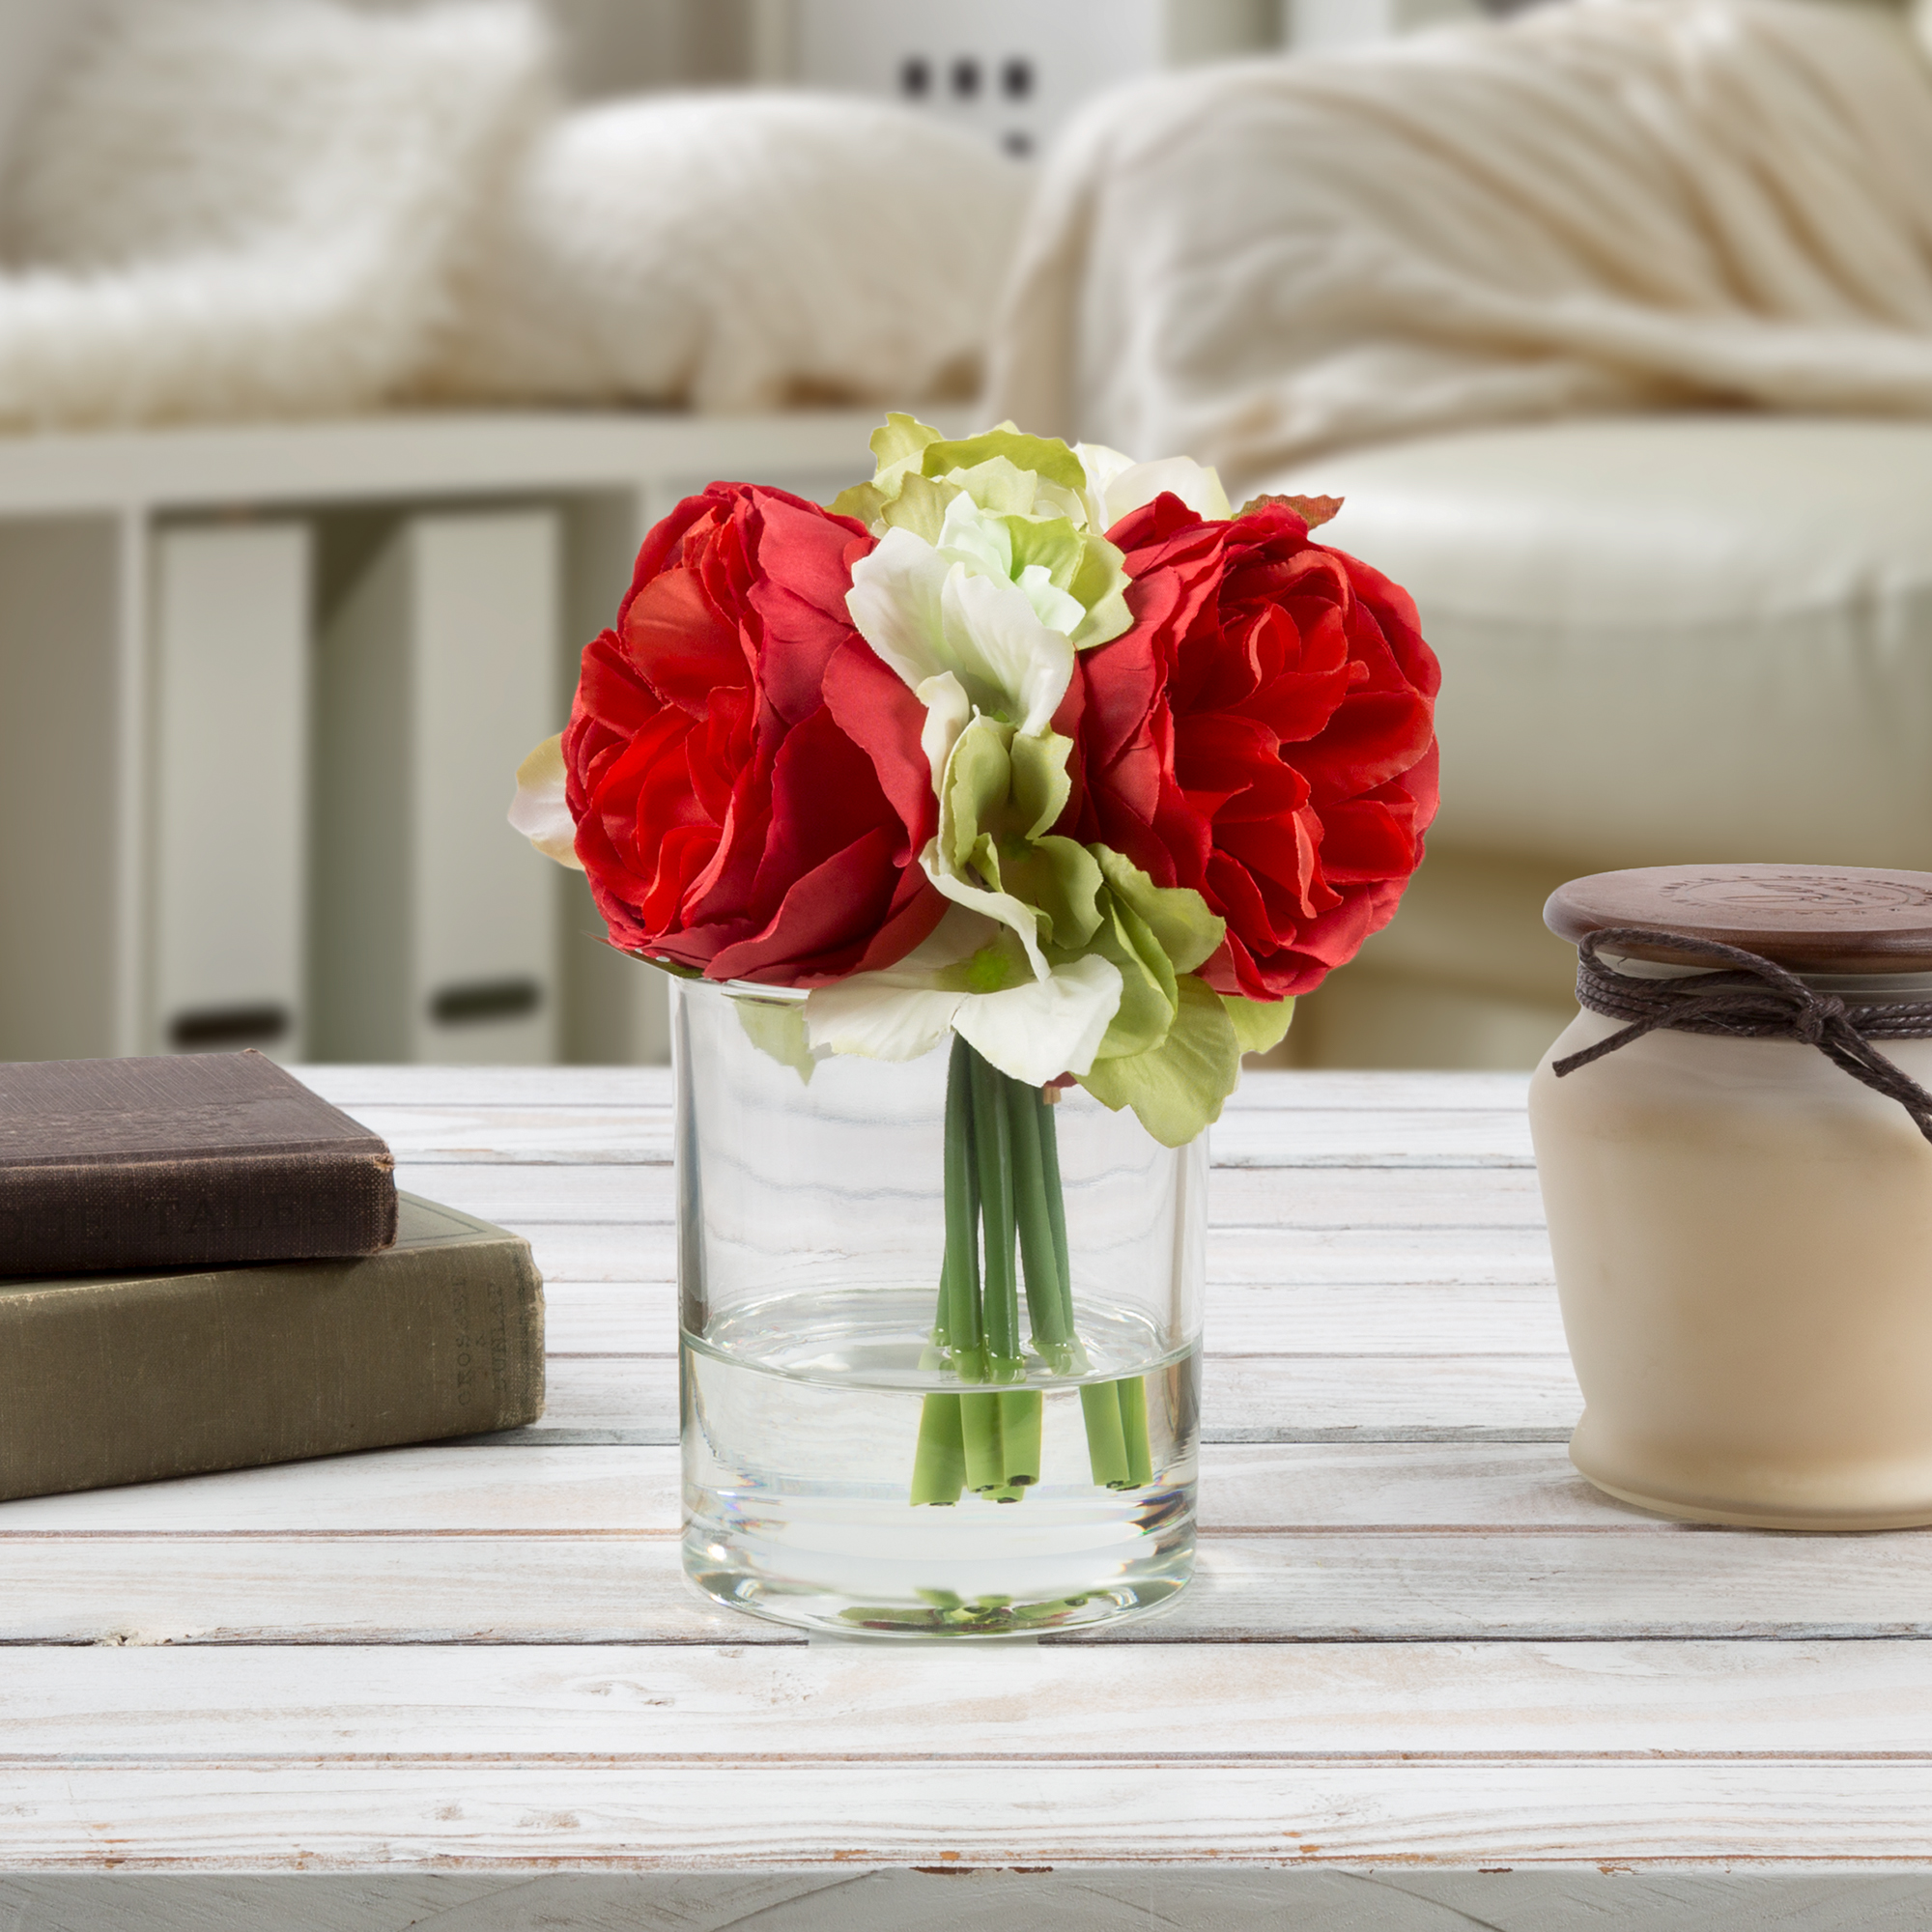 Hydrangea and Rose Artificial Floral Arrangement with Vase and Faux Water- Fake Flowers for Home Decor, Shower Centerpiece by Pure Garden (Red)